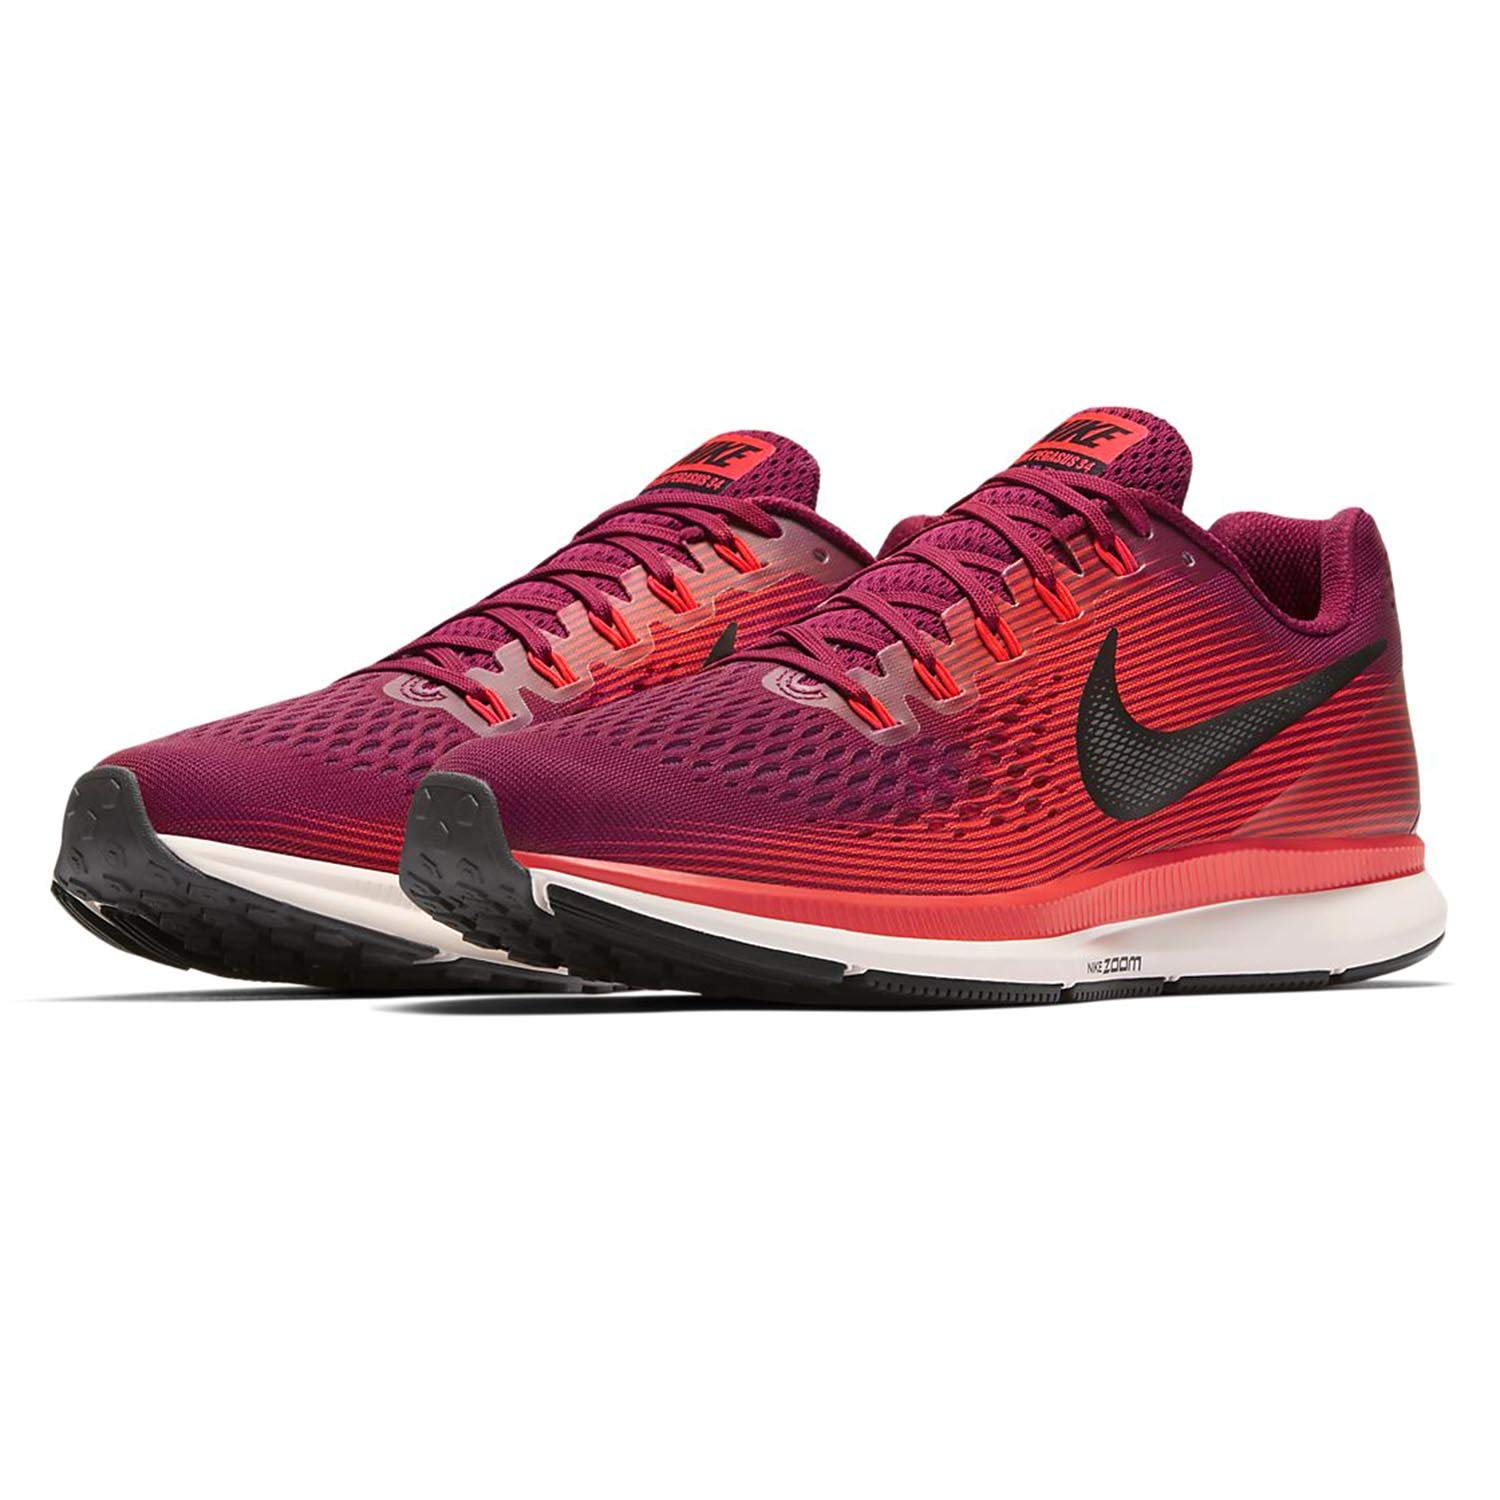 quality design 1ed83 8a343 Nike Men's Air Zoom Pegasus 34 Running Shoes (Rush Maroon/Black, 11 M US)